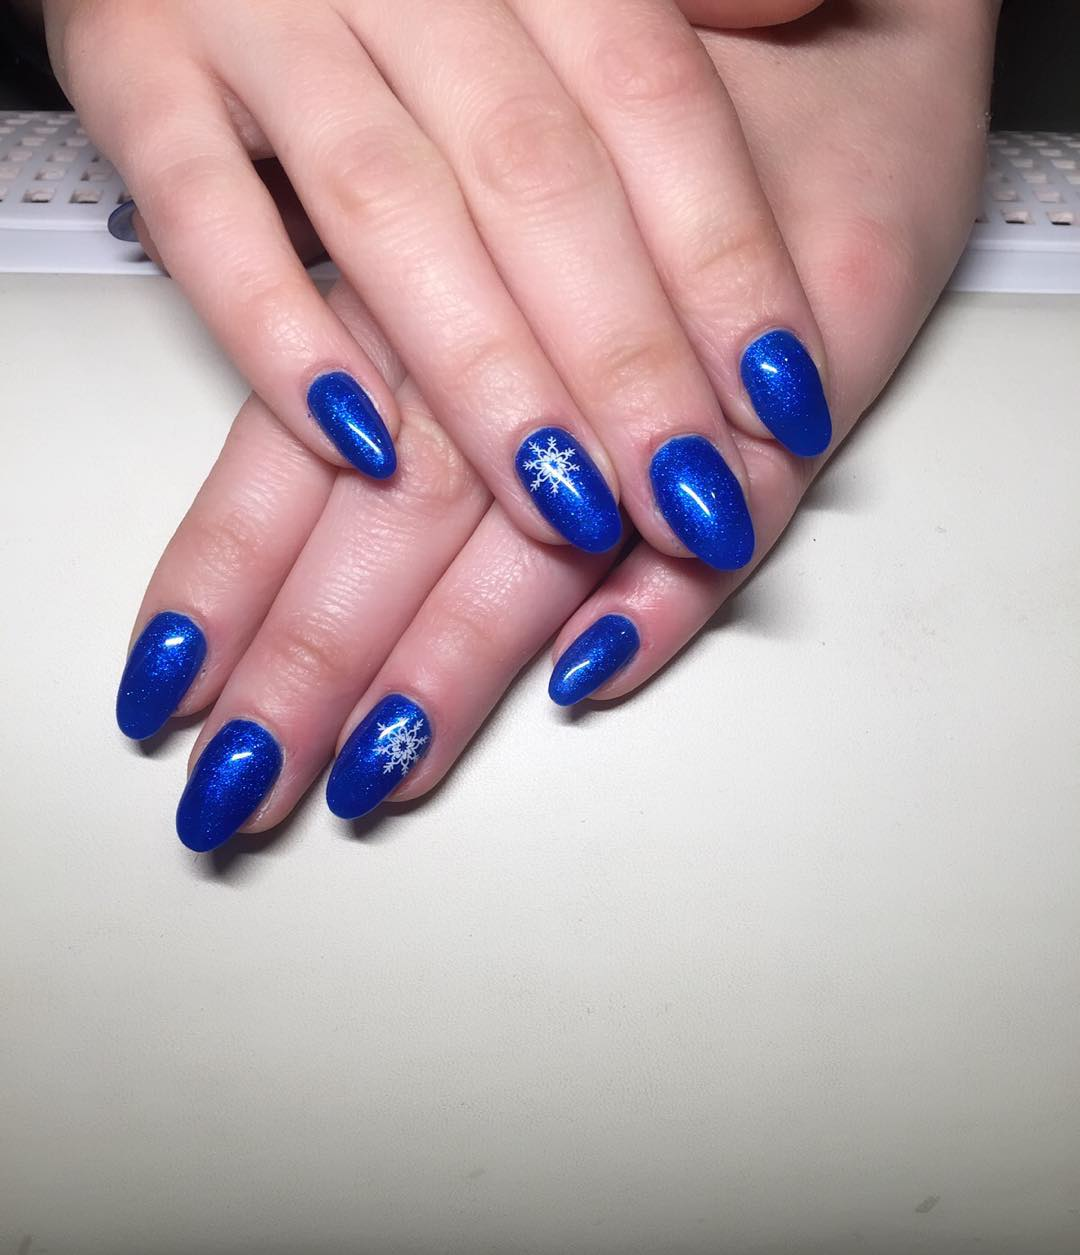 Fabulous blue nails with star design picsmine fabulous blue nails with star design prinsesfo Images